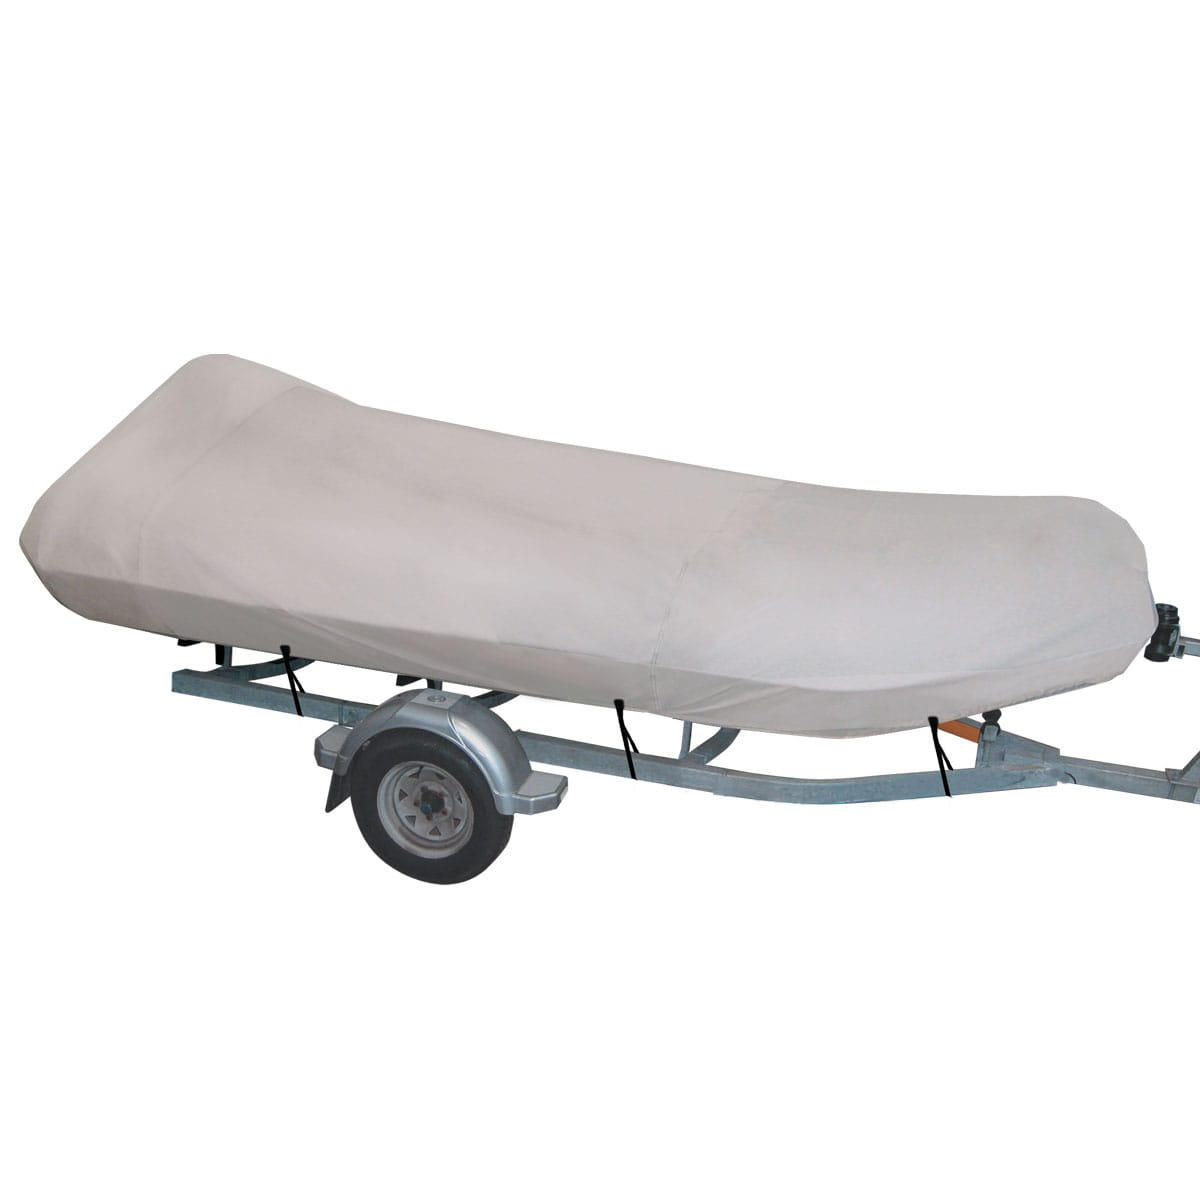 Inflatable Boat Cover Oceansouth New Zealand